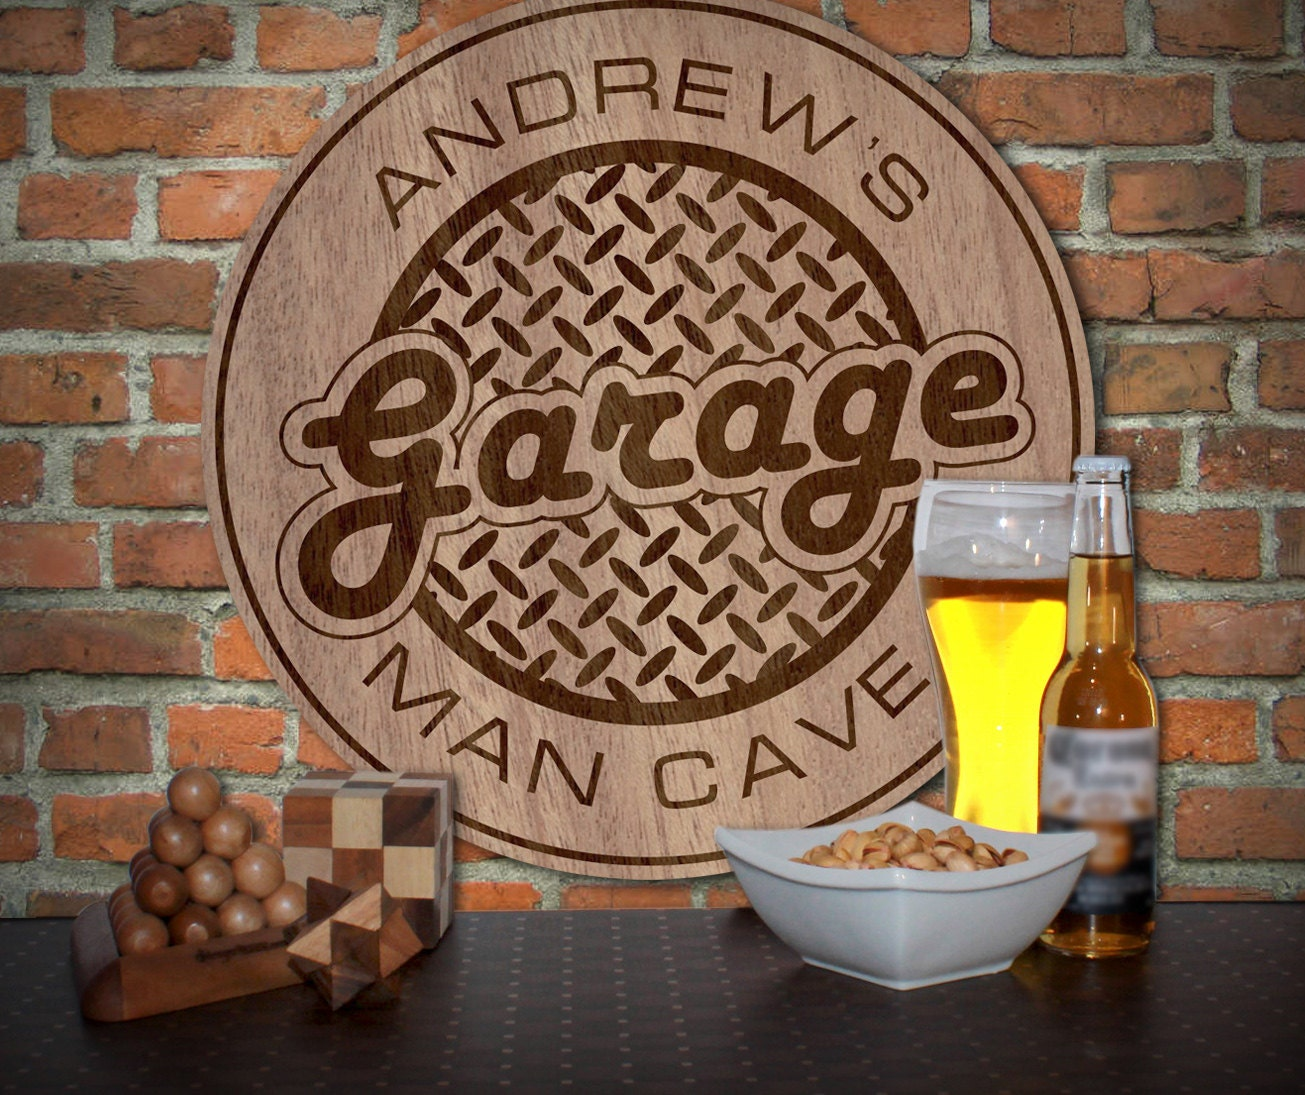 Man Cave Garage Signs : Personalized garage man cave sign by engravebylaser on etsy